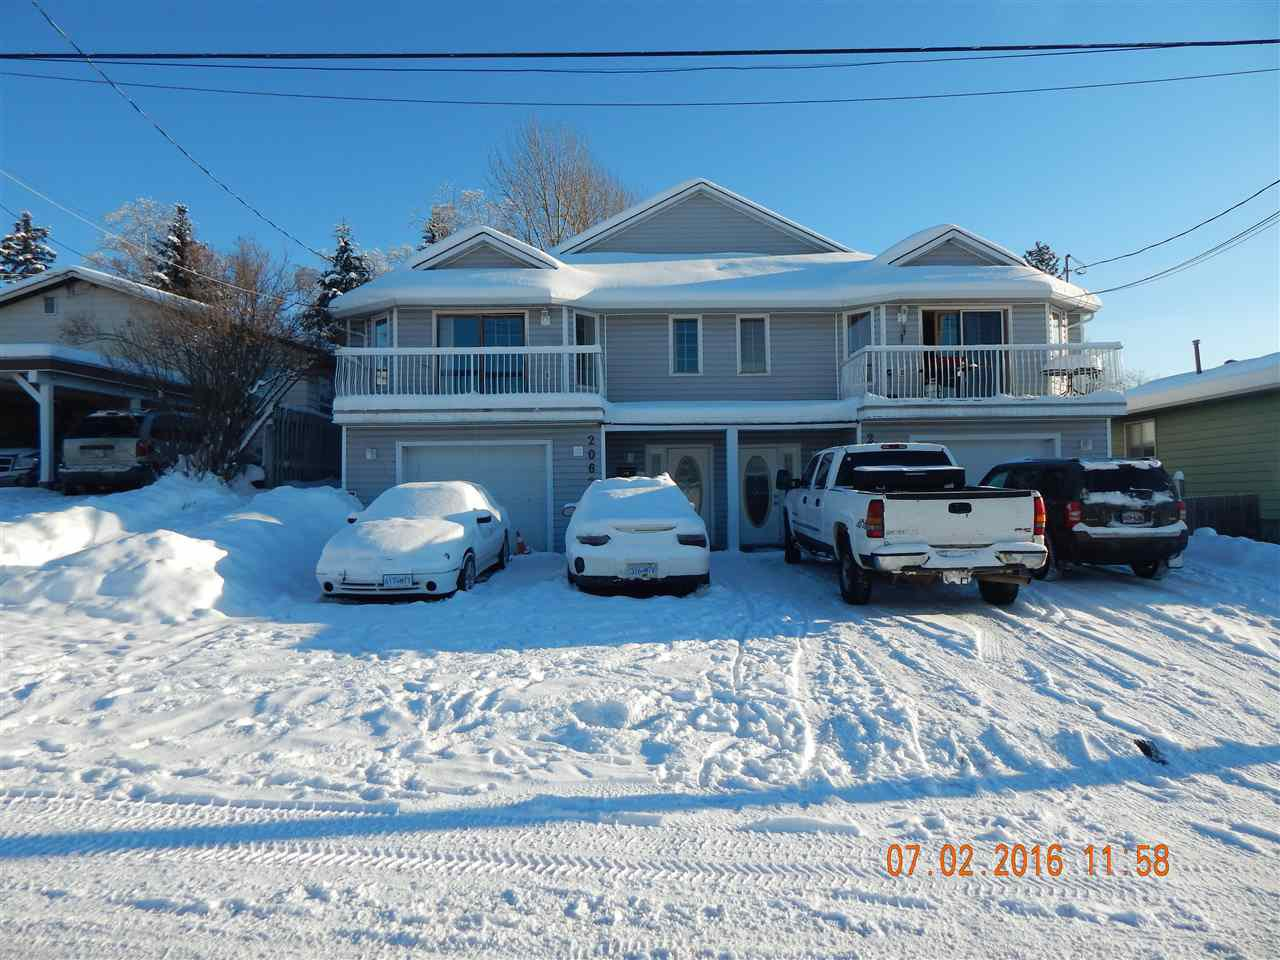 Main Photo: 2062 - 2066 QUINCE Street in Prince George: VLA House Duplex for sale (PG City Central (Zone 72))  : MLS®# R2023358